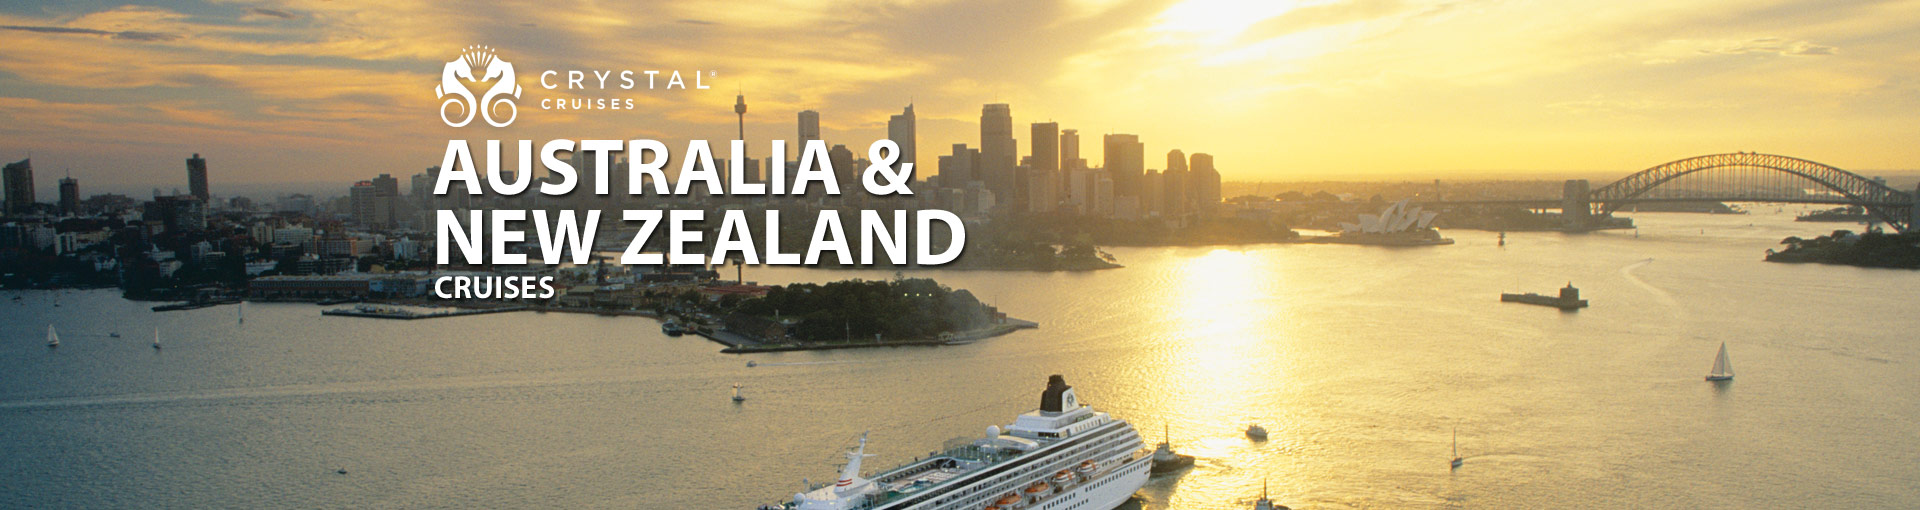 Crystal Cruises Australia New Zealand Cruises